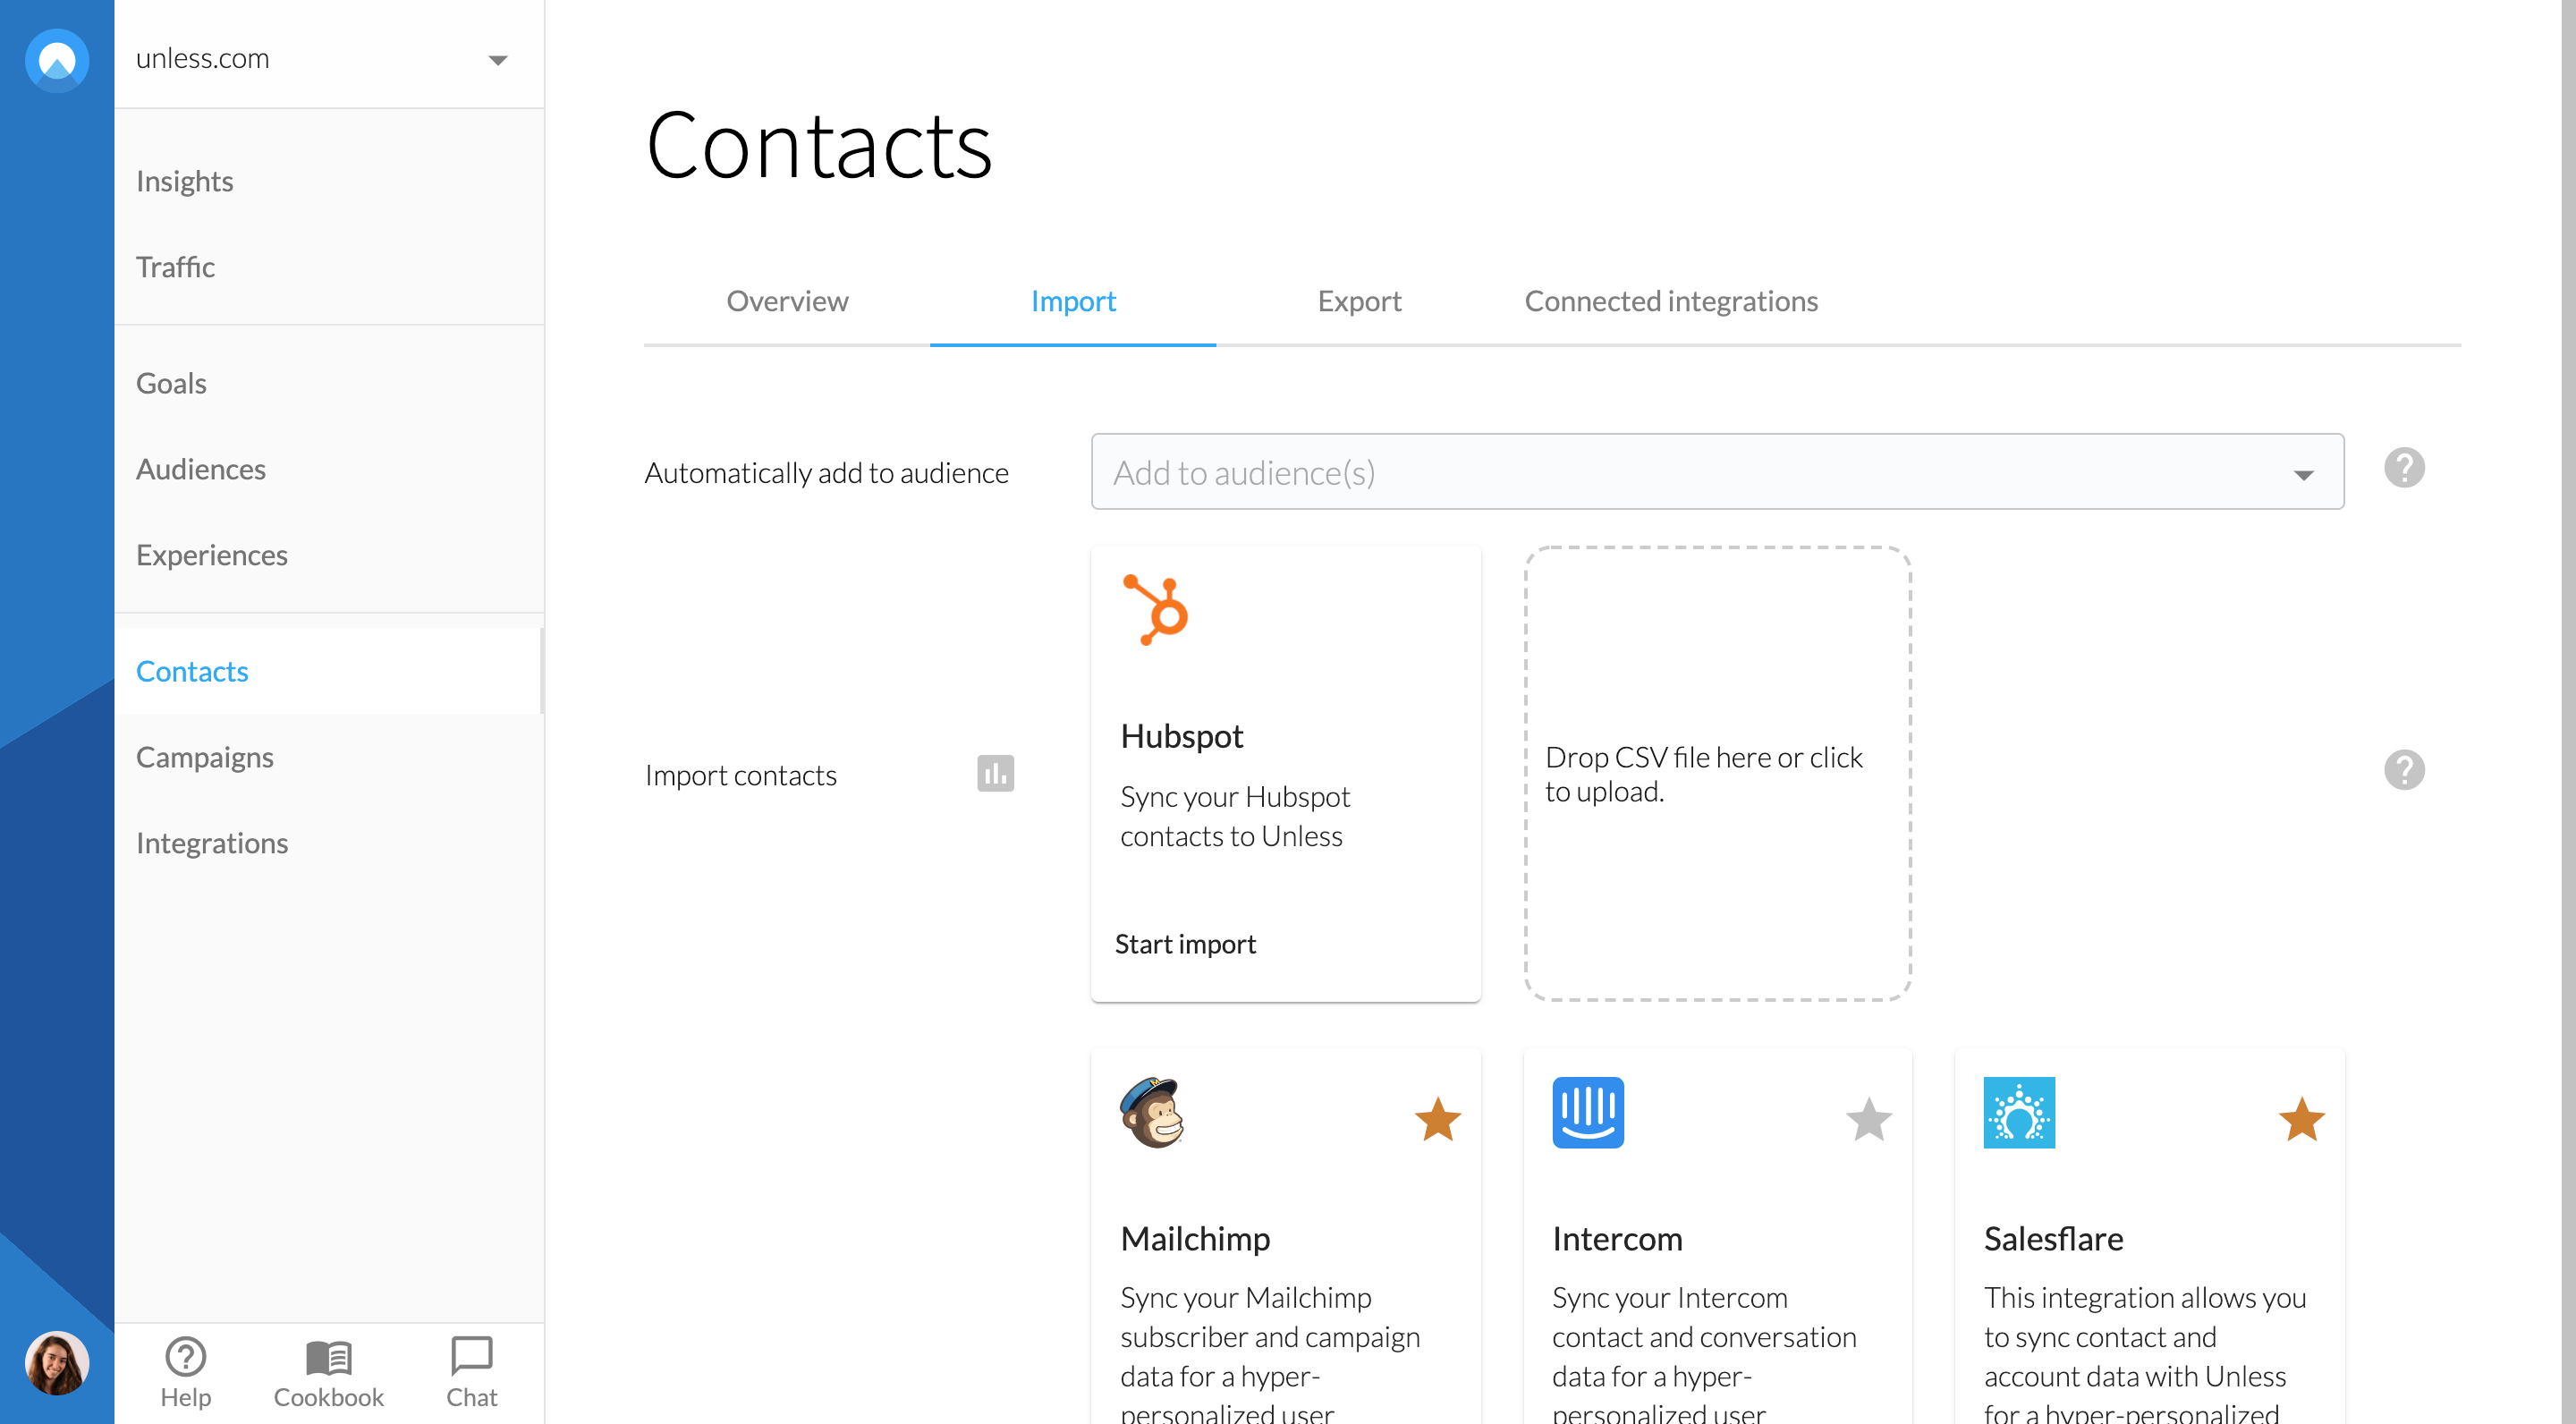 unless-contacts-import-integrations